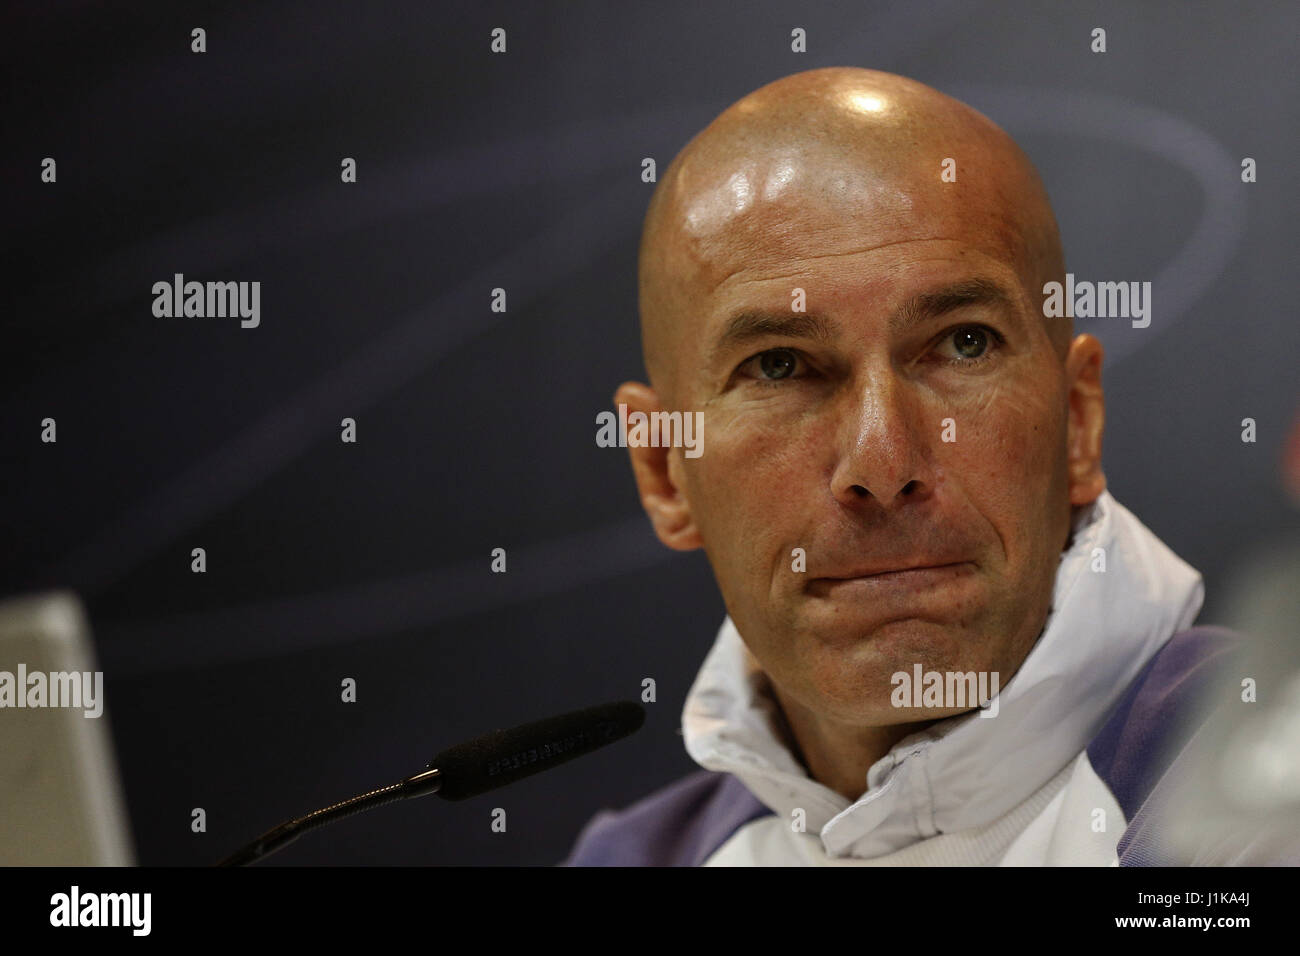 Real Madrid s French head coach Zinedine Zidane during a press